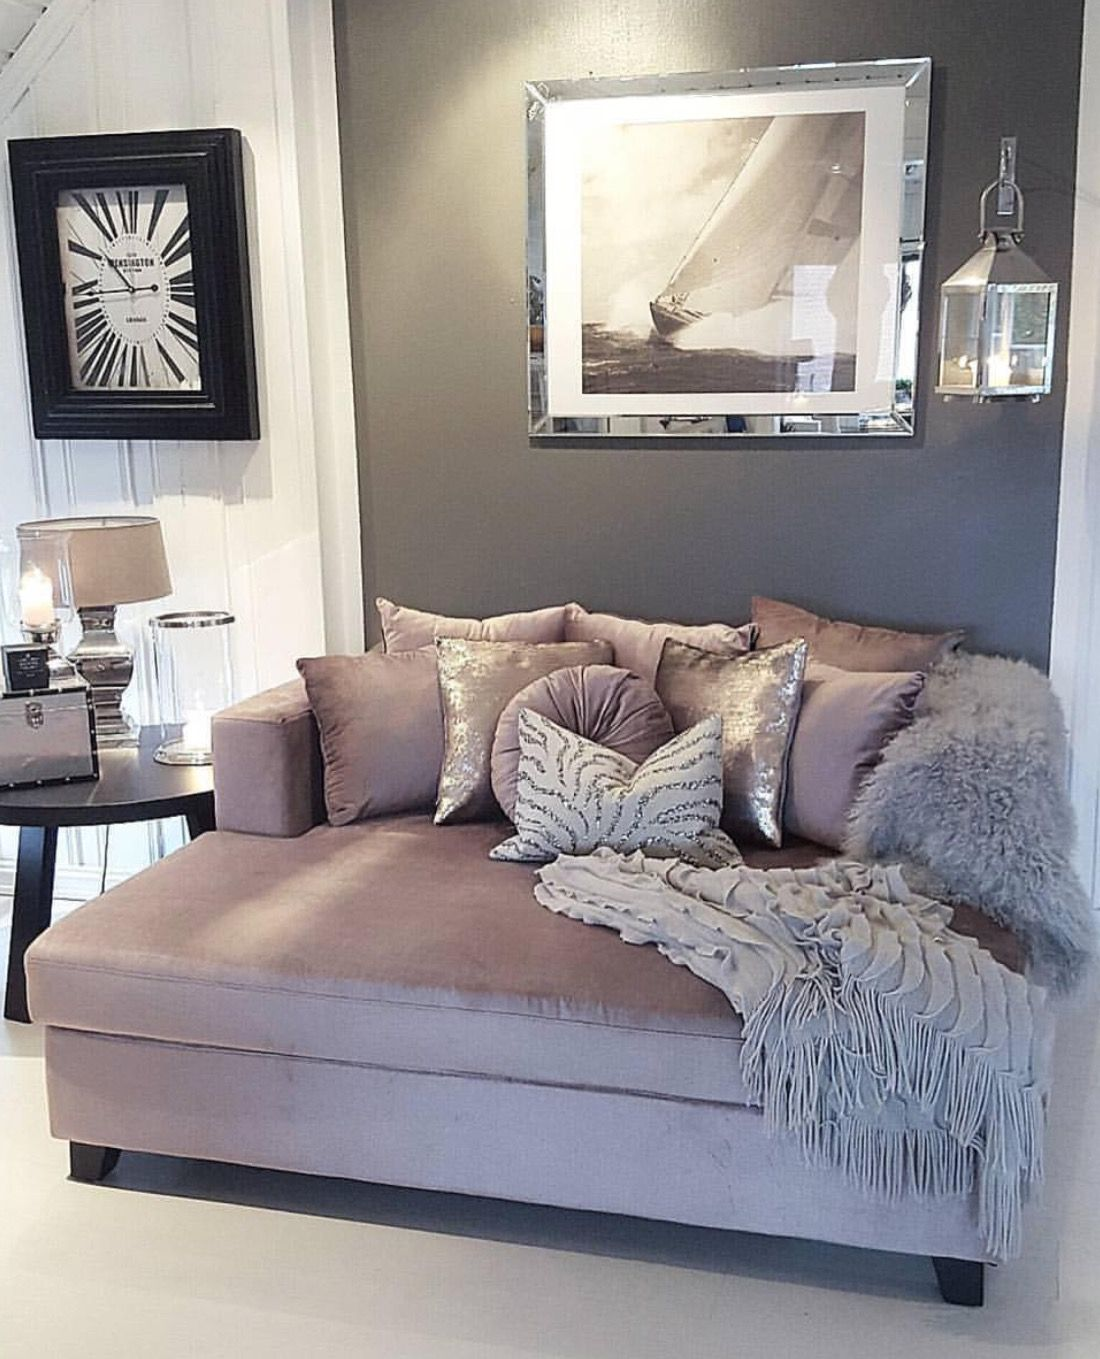 rialto sofa bed 8ft table grey and mauve living room - new blog wallpapers